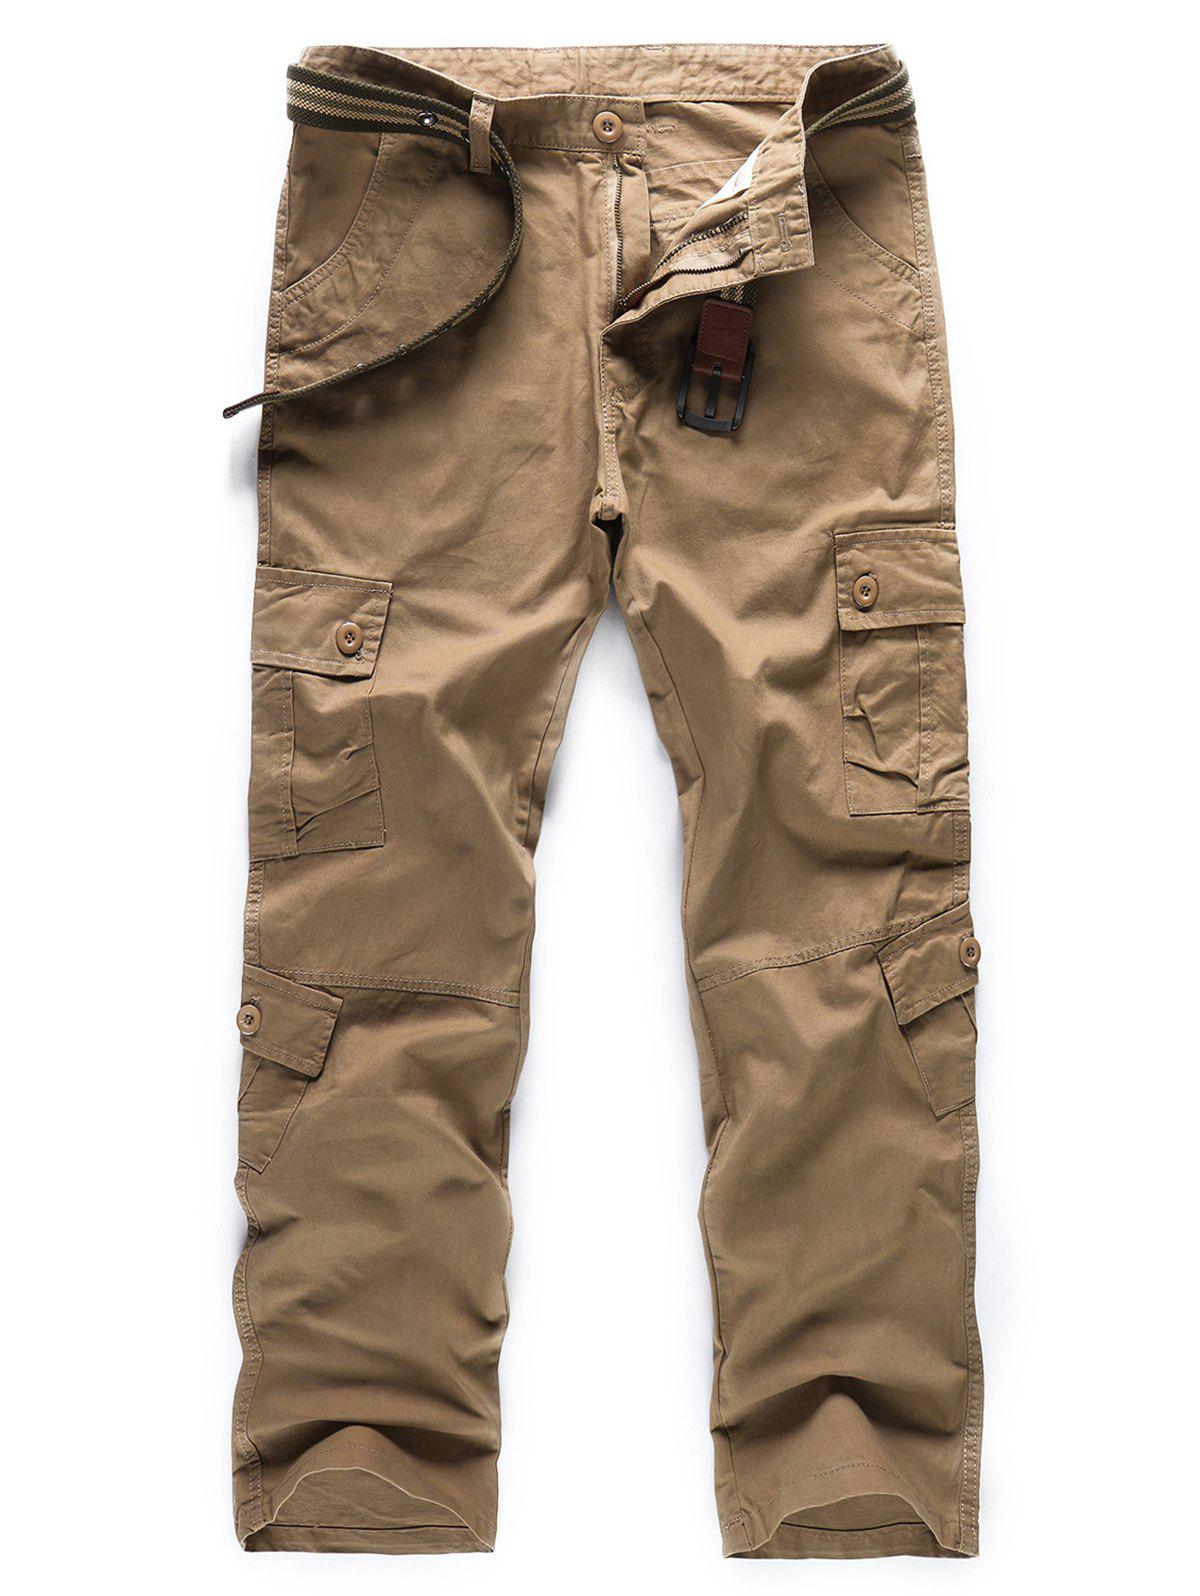 Buy Casual Solid Color Pockets Design Cargo Pants